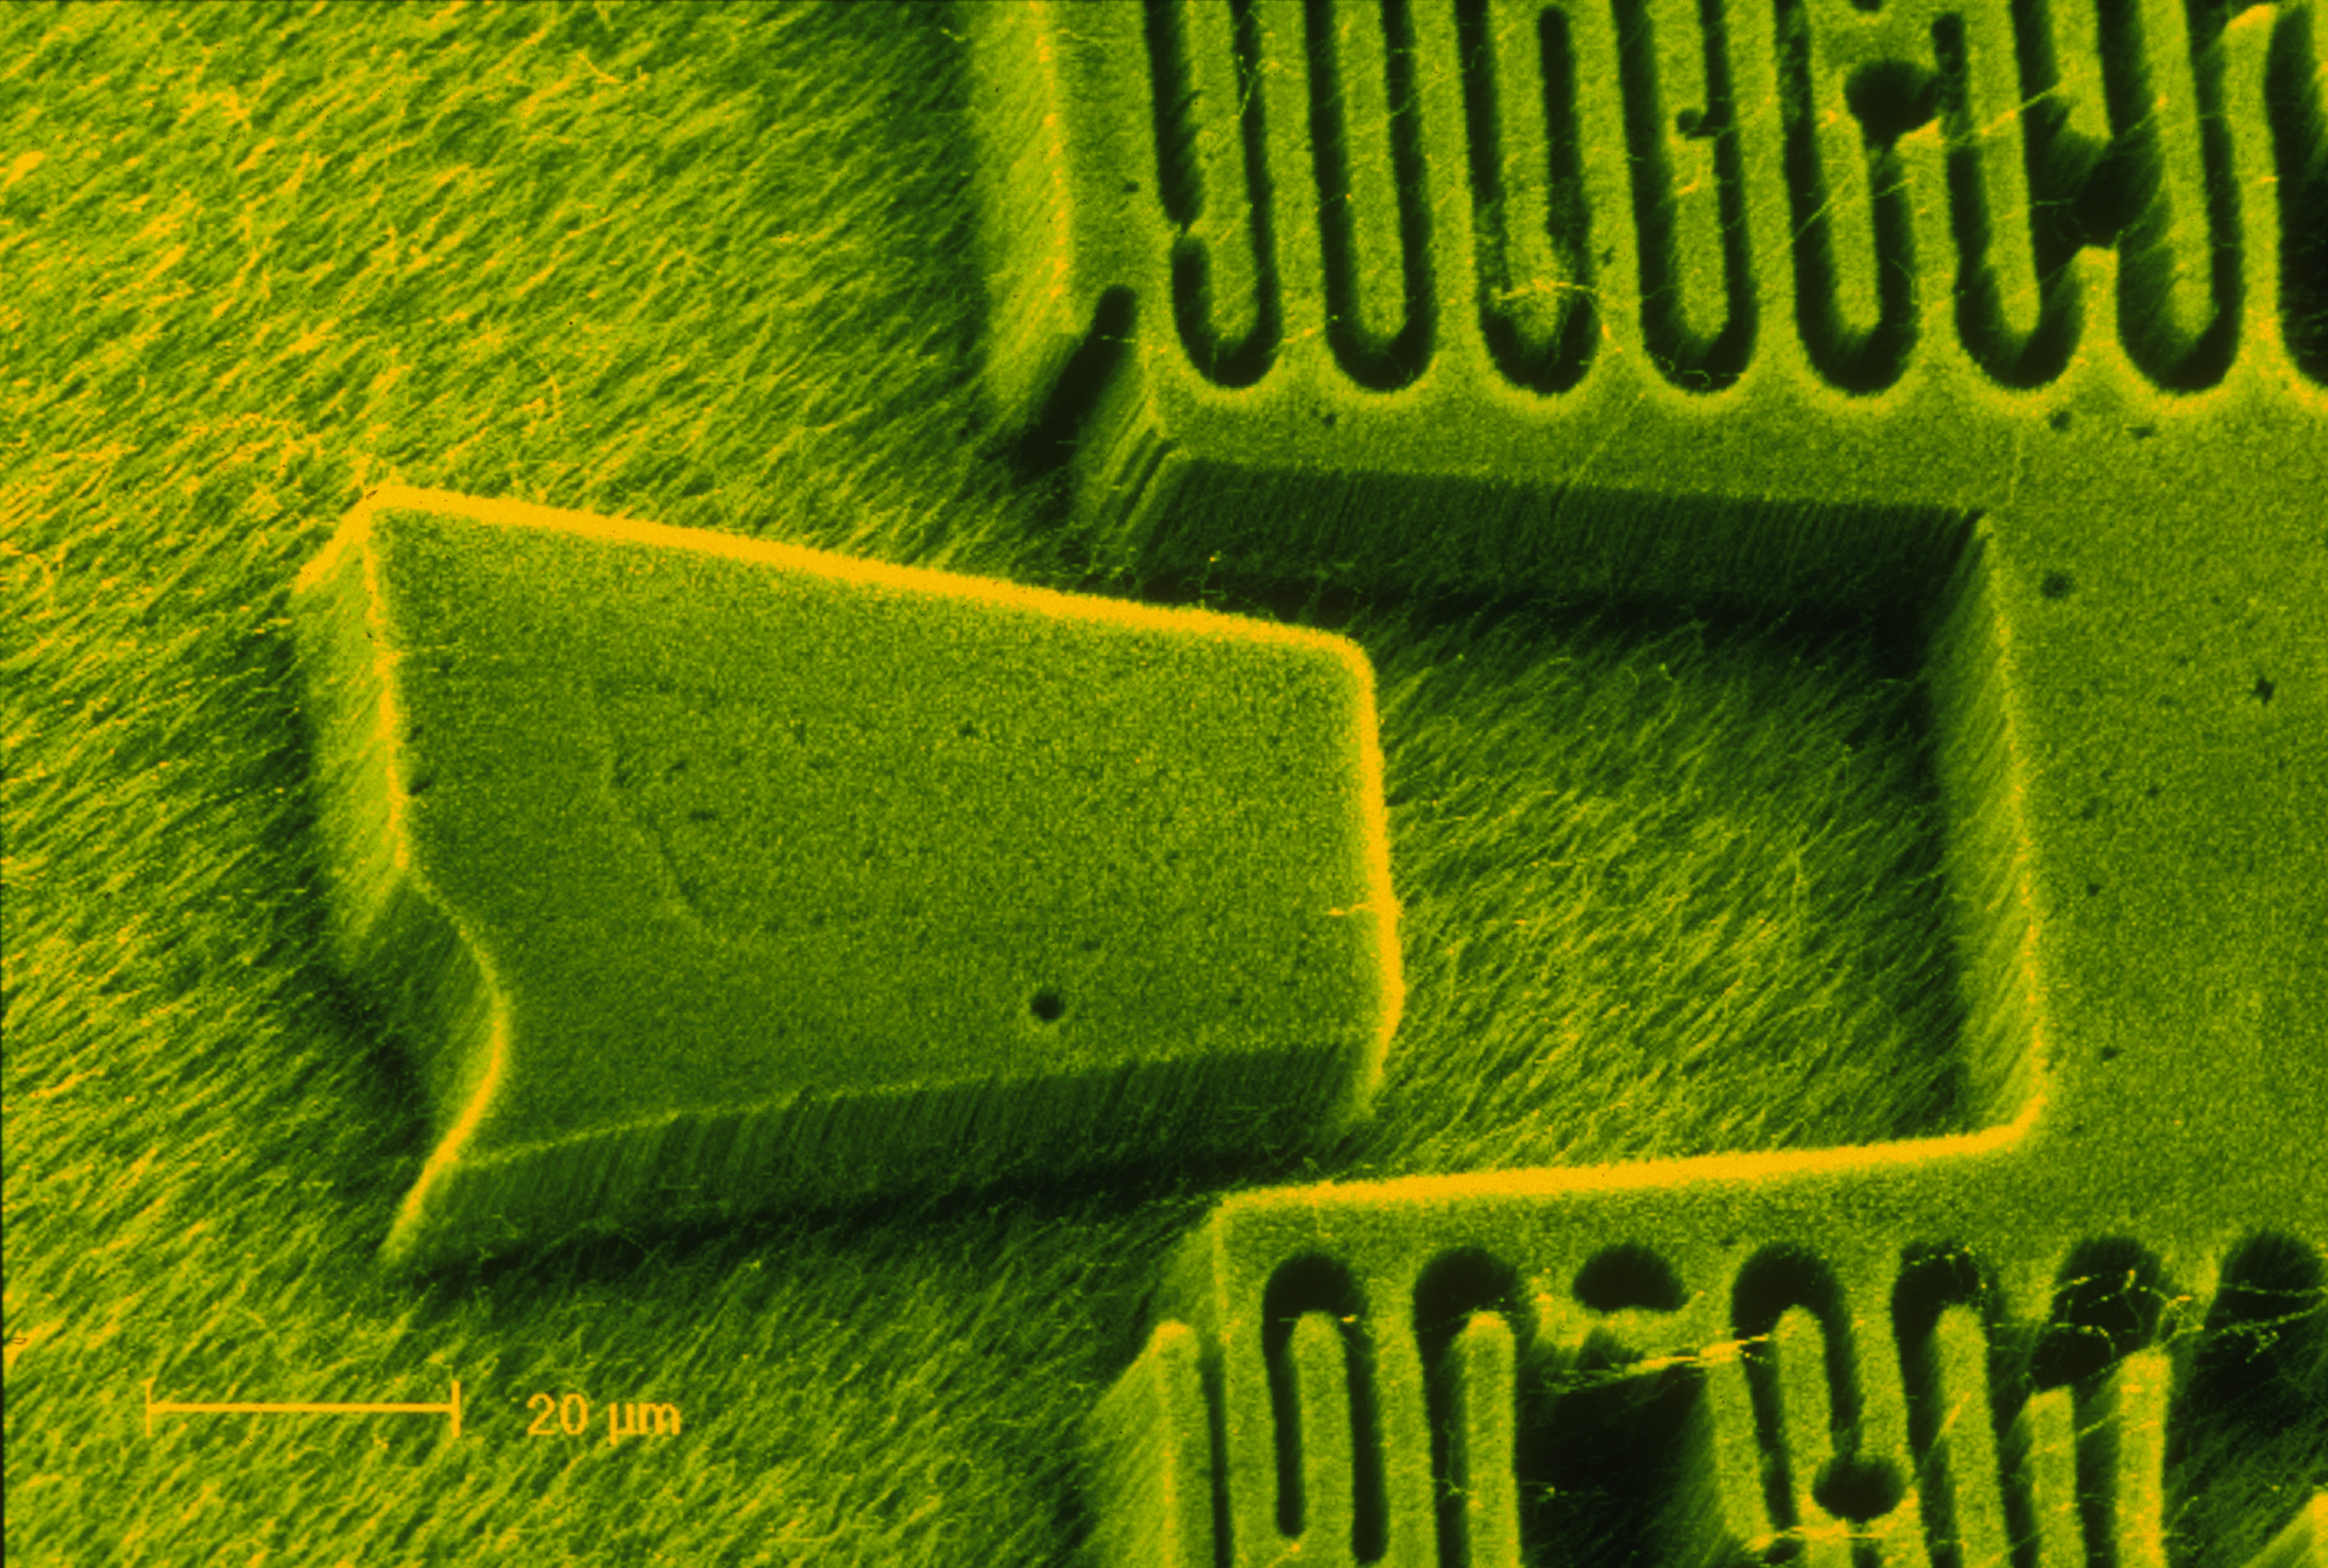 When 3D Printing Meets Nanotechnology... - Image 1